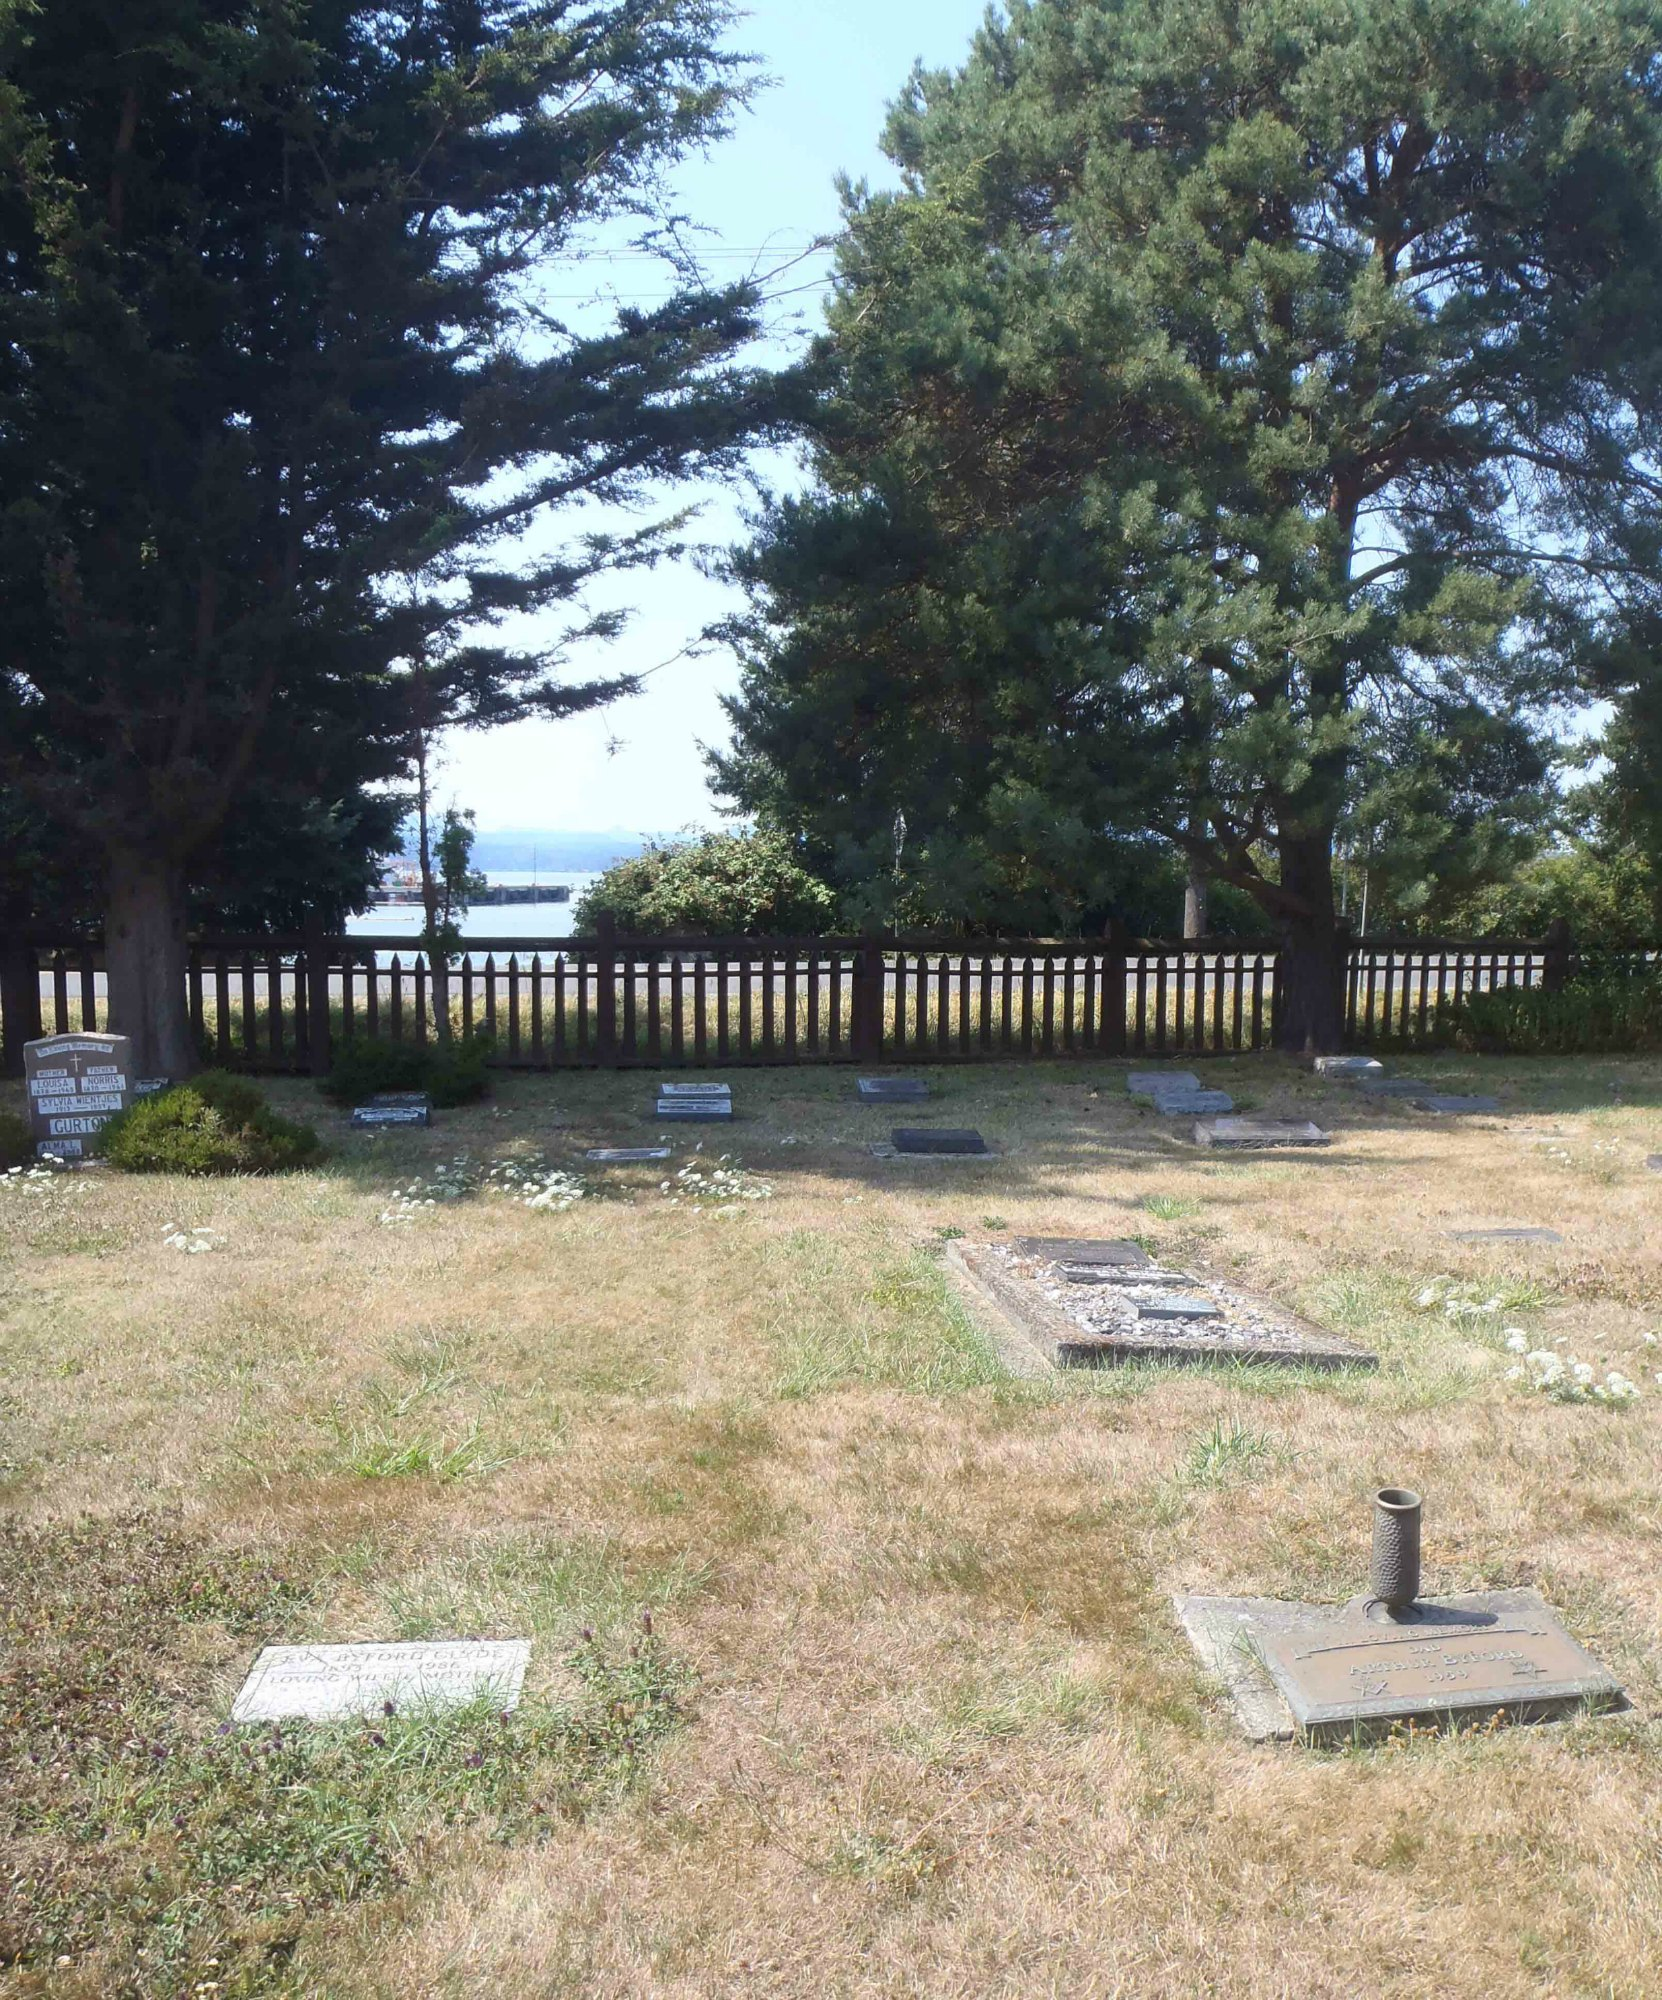 The graves of Arthur Byford and Eva Byford Clyde, Holy Trinity Anglican cemetery, North Saanich, B.C.